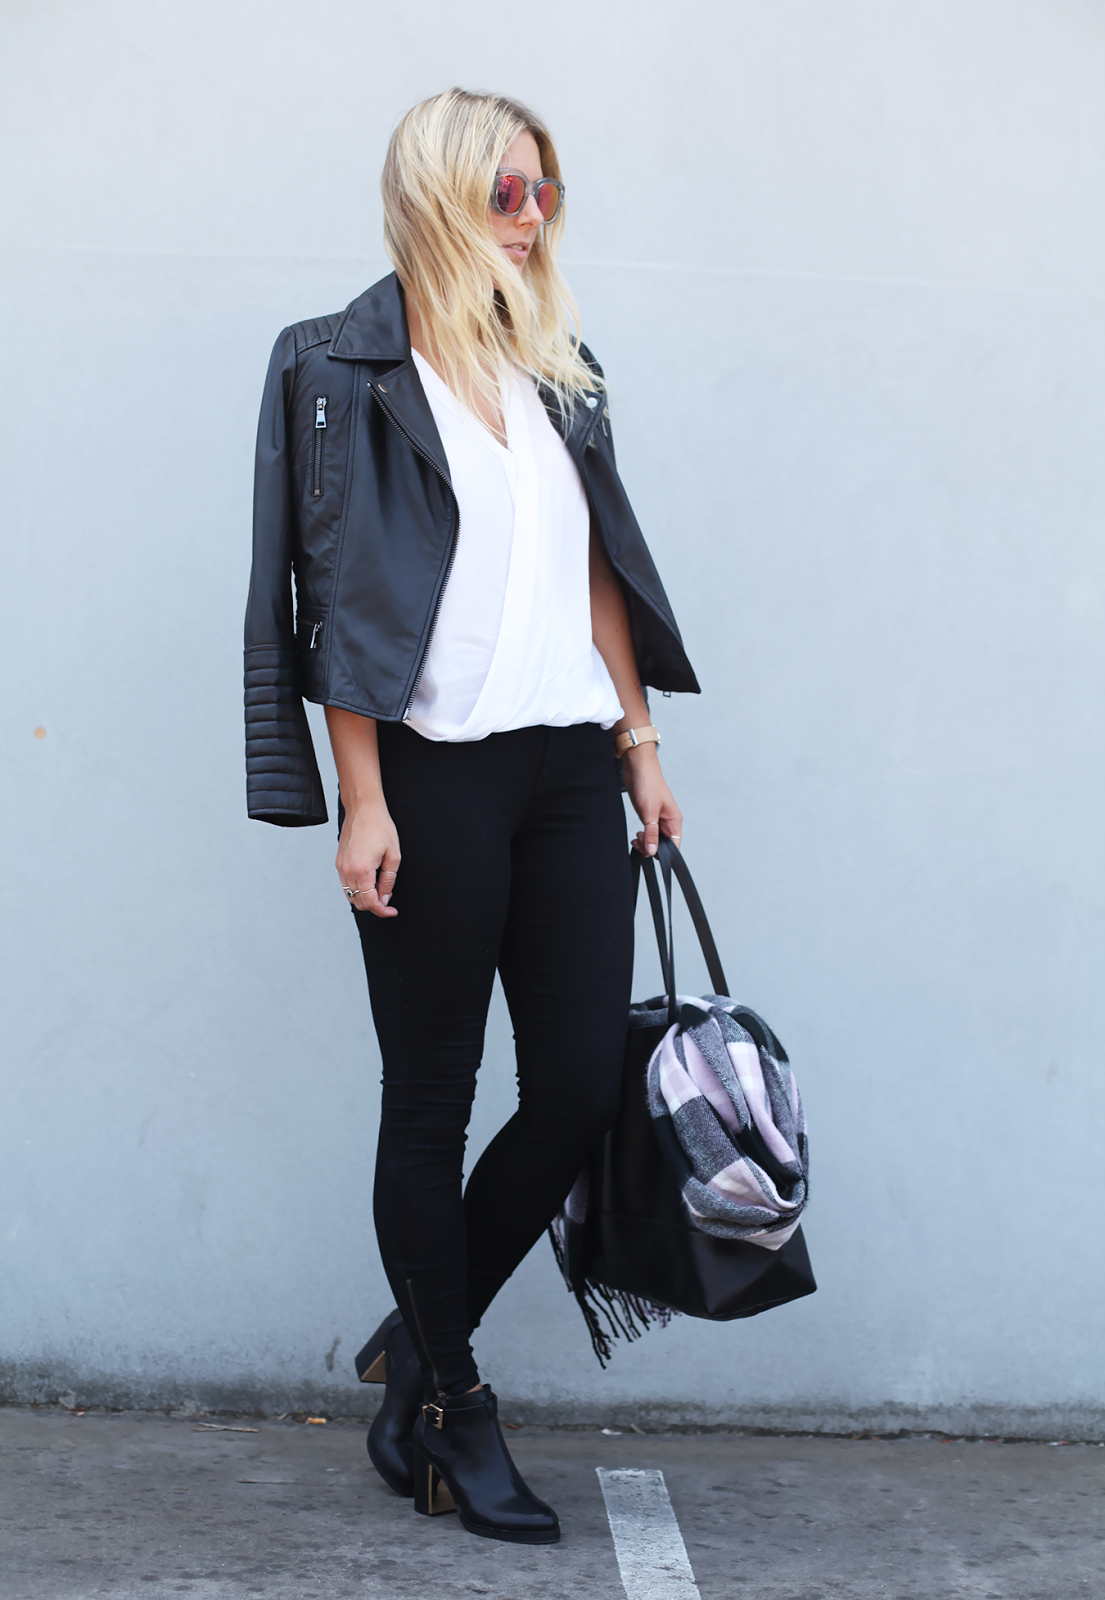 How To Wear A Black And White Outfit: Lisa Hamilton is wearing a pair of Forever New skinny jeans, a biker jacket from Jessie and black ankle boots